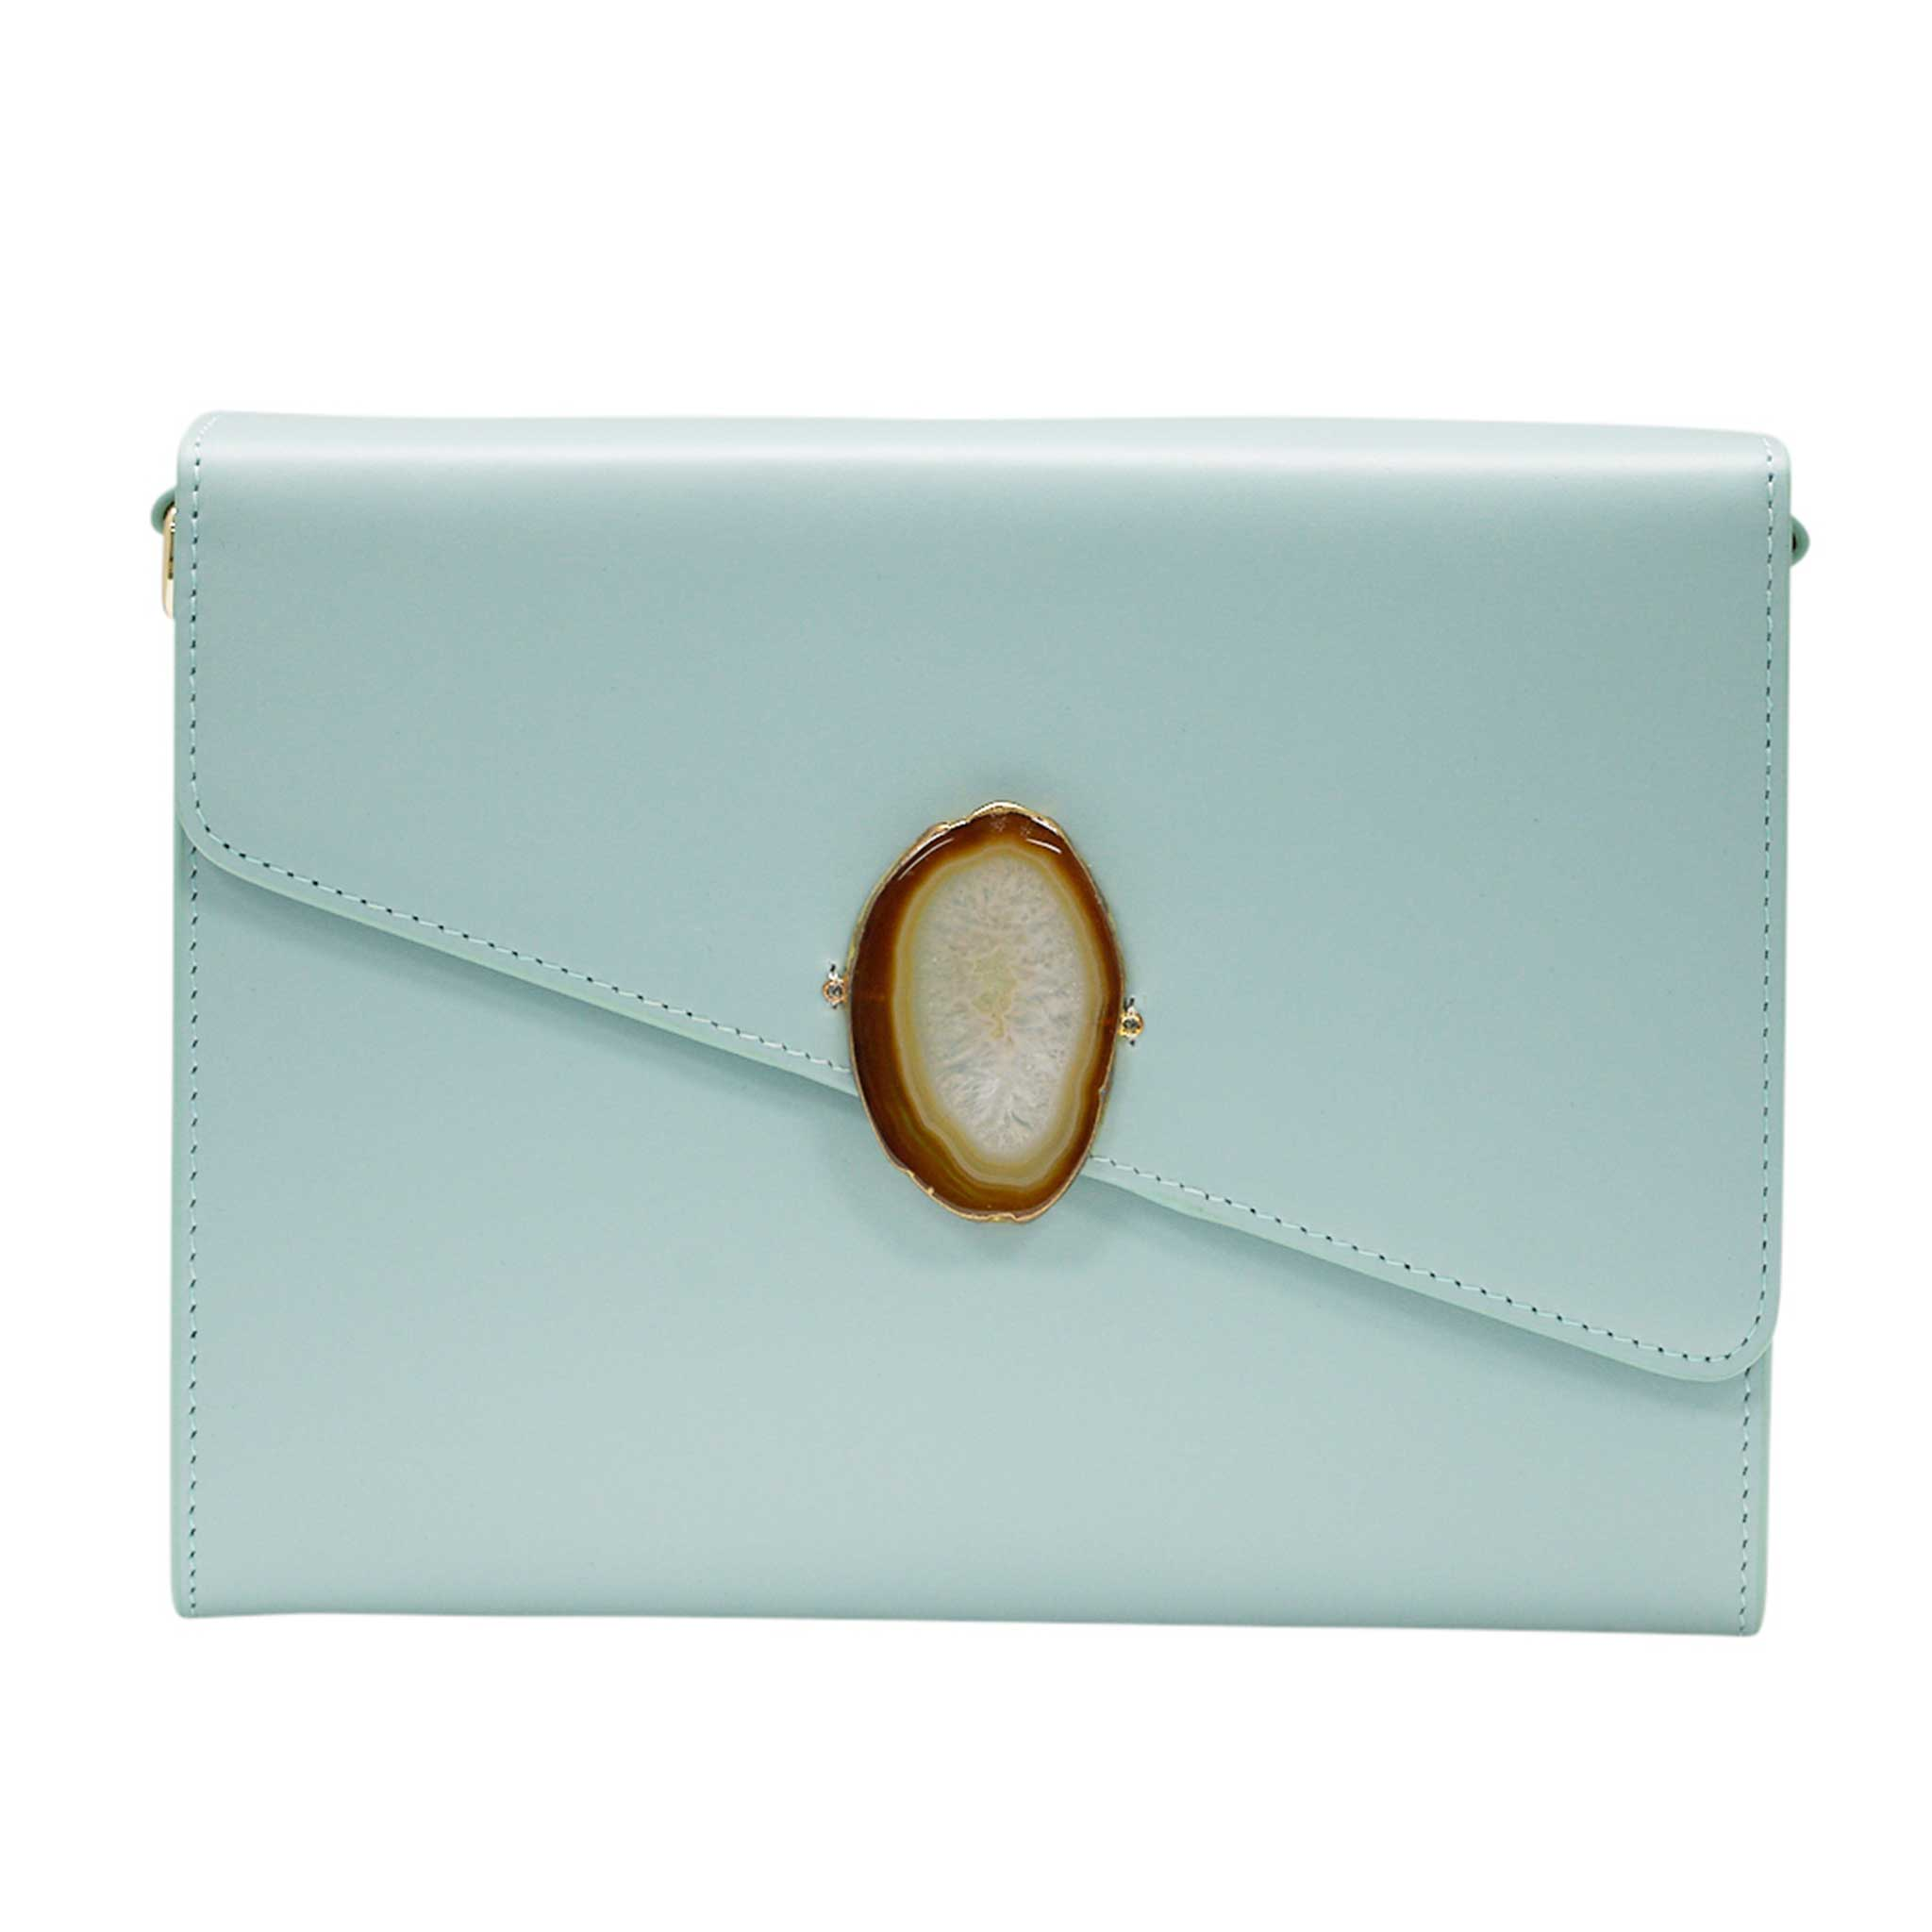 LOVED BAG - MOONSTONE WHITE LEATHER WITH BROWN AGATE - 1.02.001.018